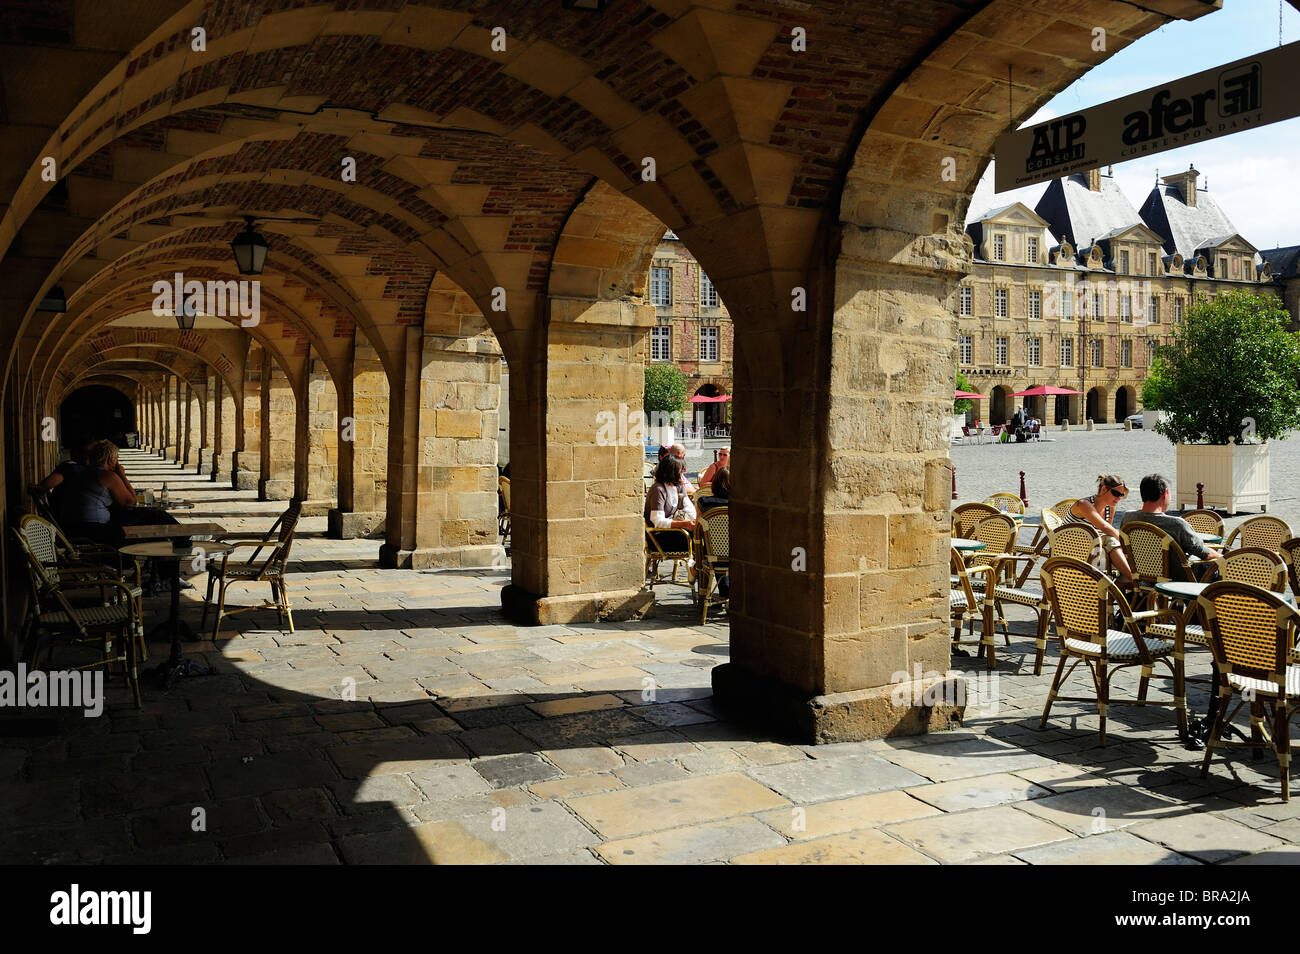 Place Ducale in Charleville in Ardennes region of France - Stock Image